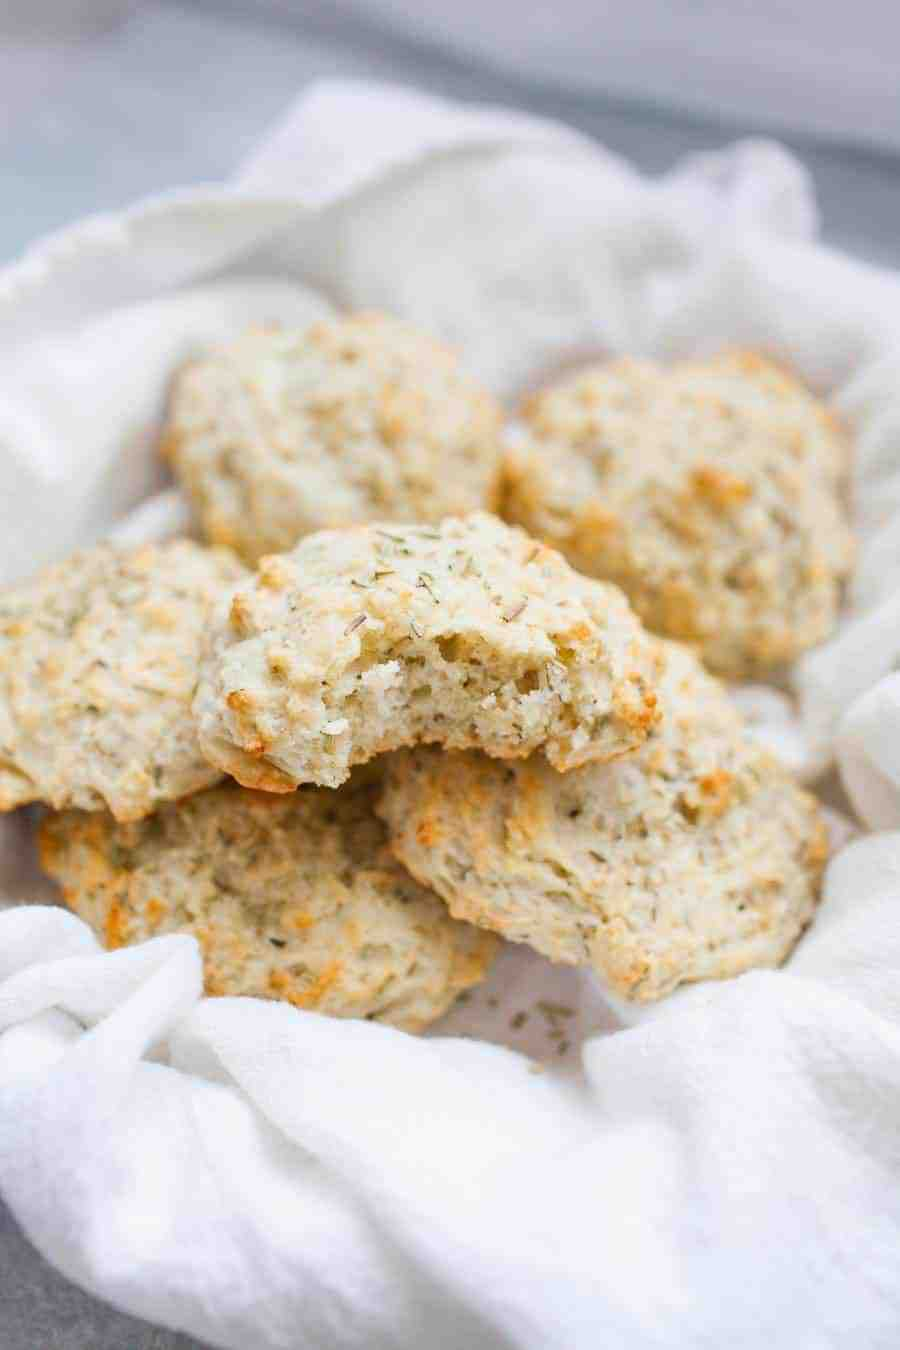 Love having bread with your dinner? These quick, goat cheese rosemary drop biscuits are the solution! These biscuits will trump any store bought bread and the best part is they're ready quickly. Start with a basic drop biscuit recipe and add in a hint of goat cheese and rosemary for a buttery, creamy biscuit. Serve with a slab of butter or as is and you have the perfect bread component to any dinner!